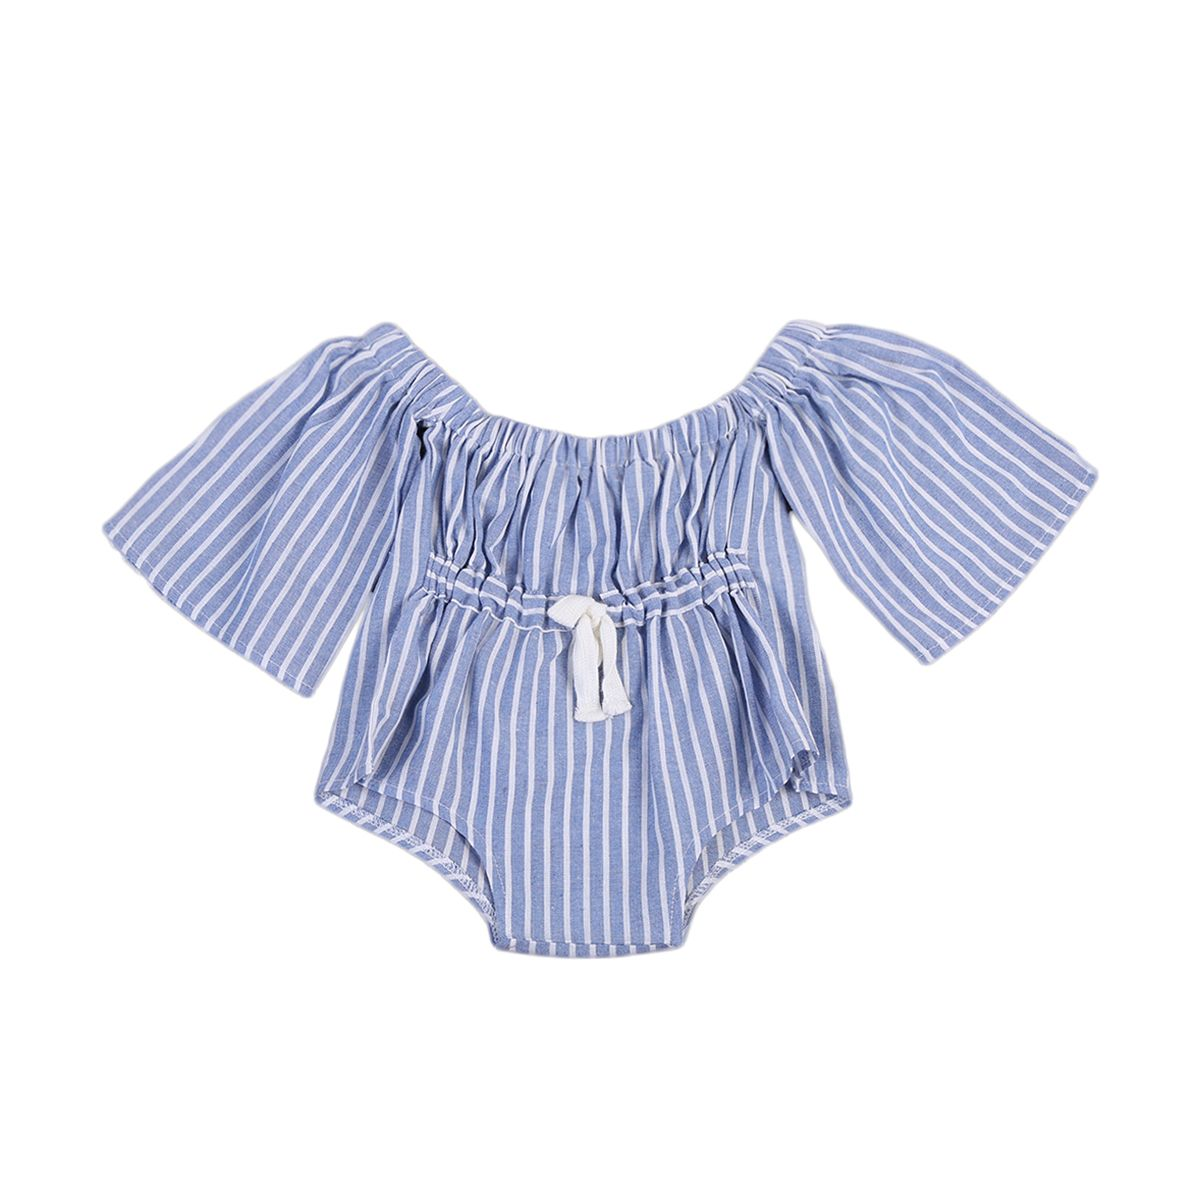 518b1d0ff00c Click to Buy    Toddler Baby Kids Girl Striped Off-Shoulder Romper Jumpsuit  Clothes Sunsuit 0-4T  Affiliate. Helen115 Summer Newborn ...